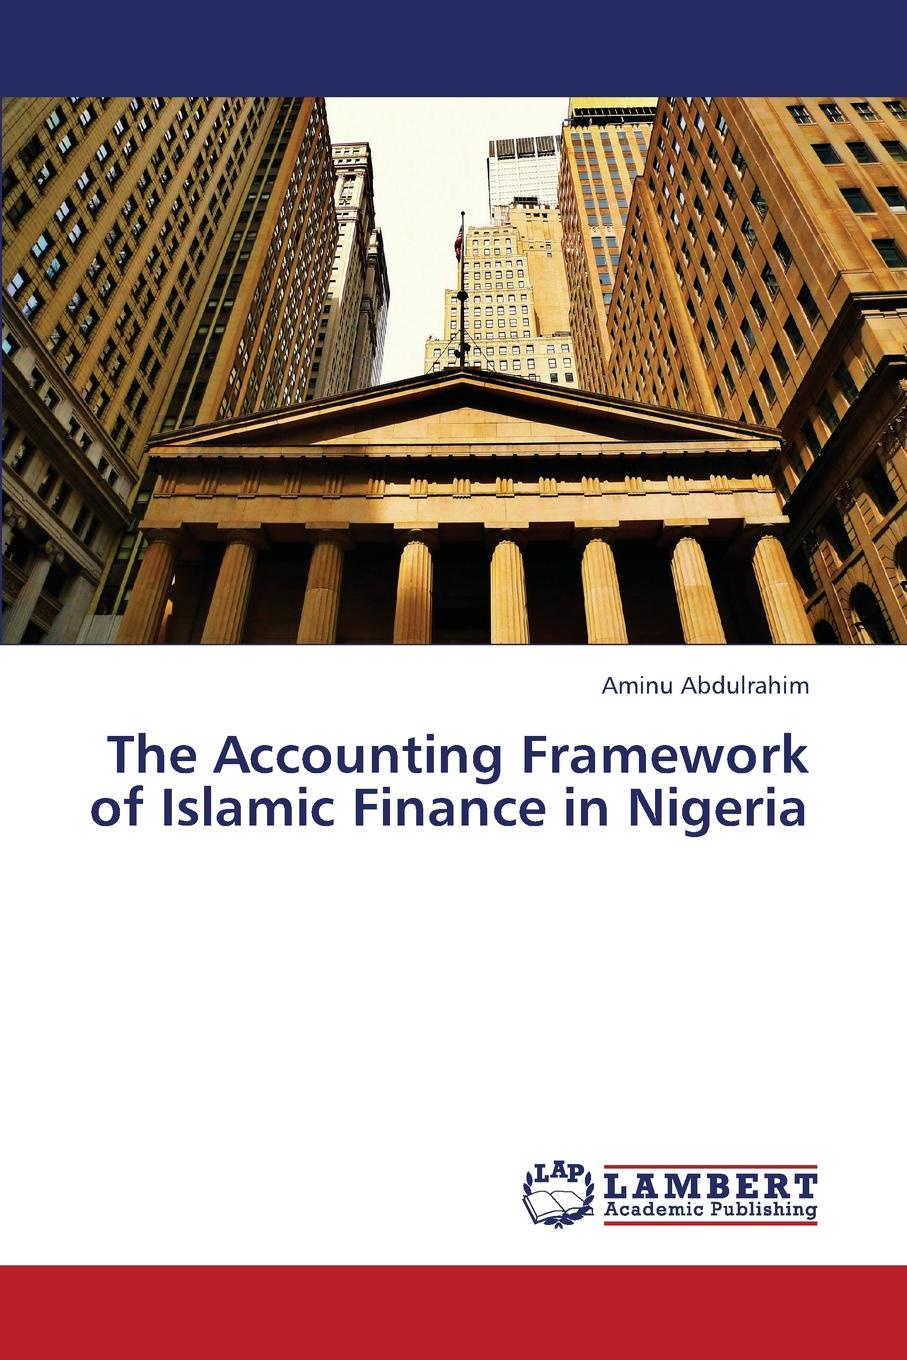 цена на Abdulrahim Aminu The Accounting Framework of Islamic Finance in Nigeria